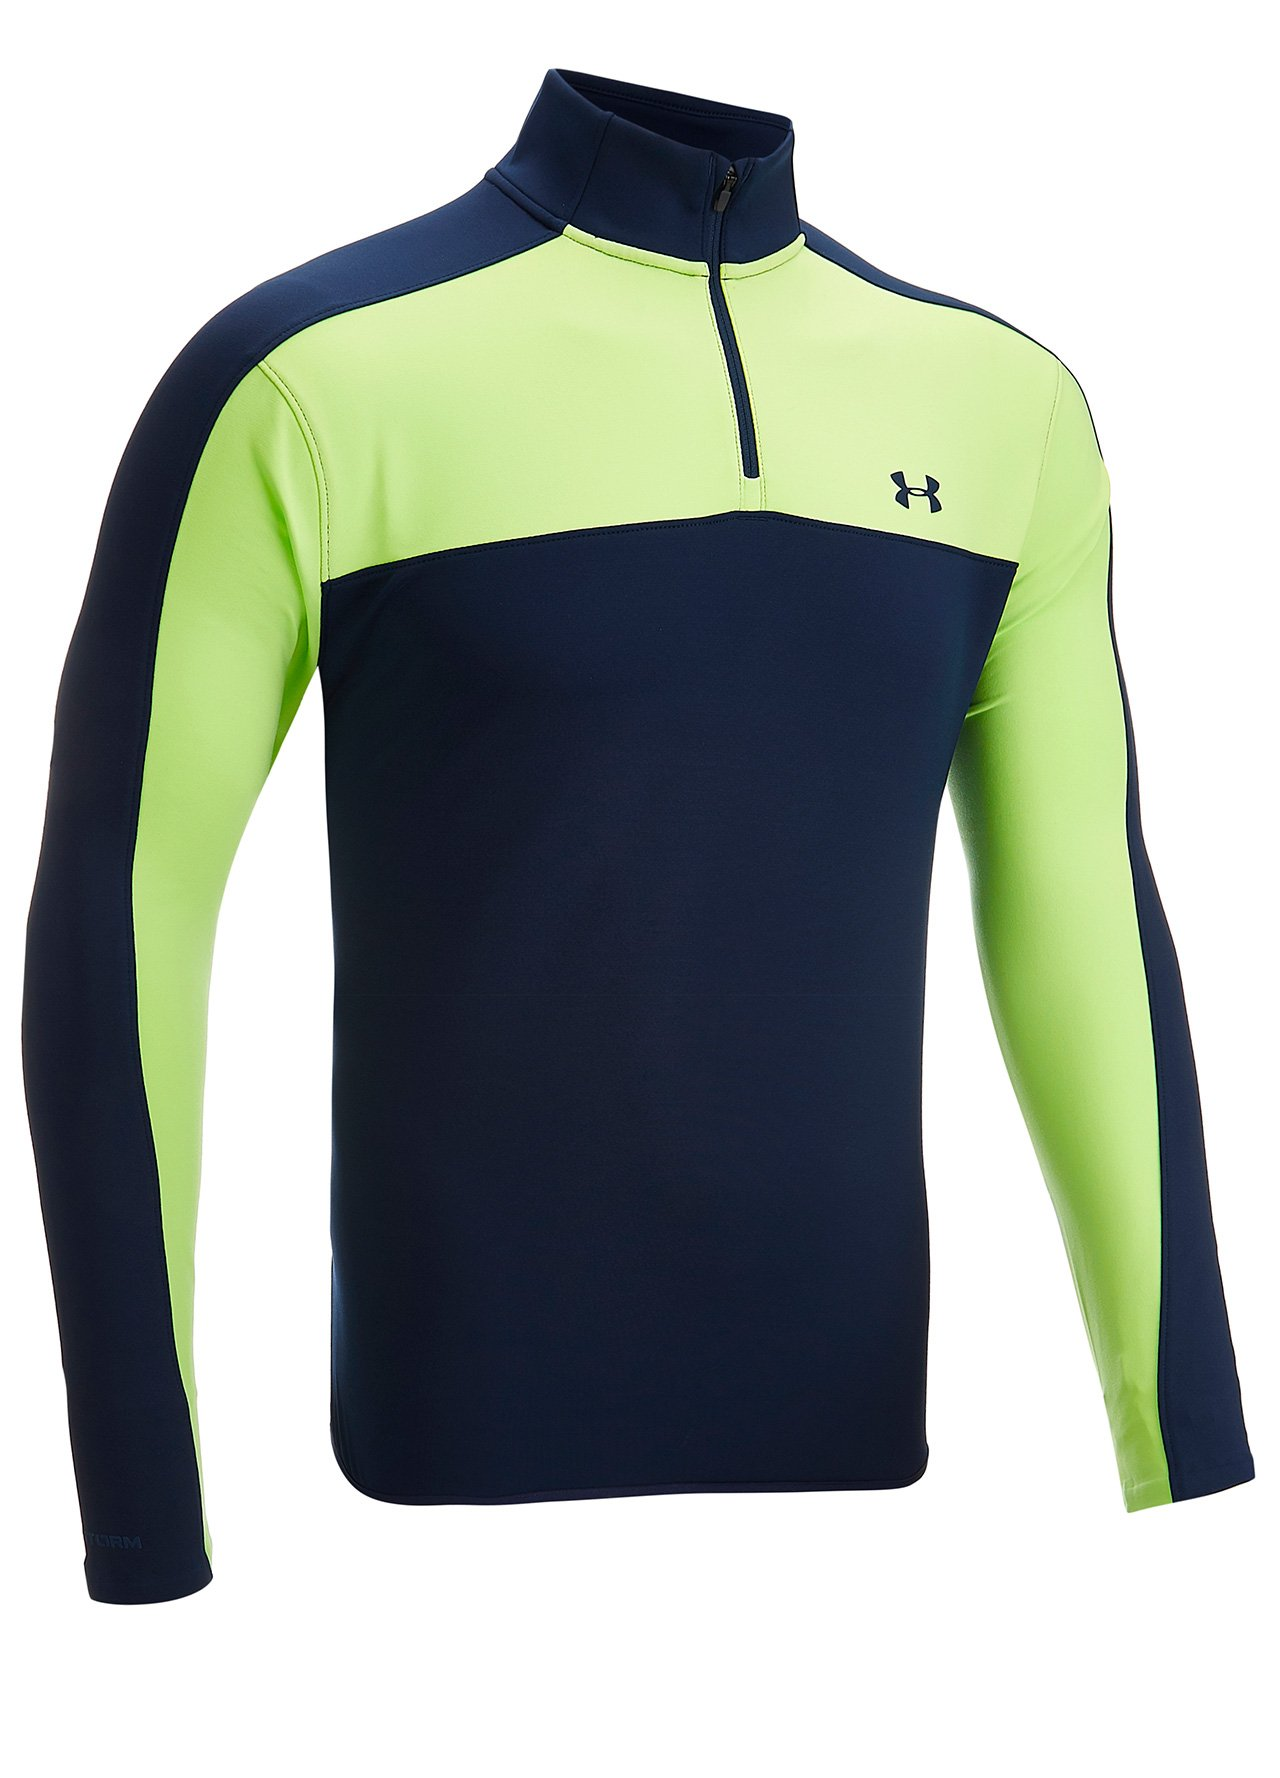 52612a110 Warehouse Clearance - Navygreen Under Armour 1/4 Zip Water Resistant ...